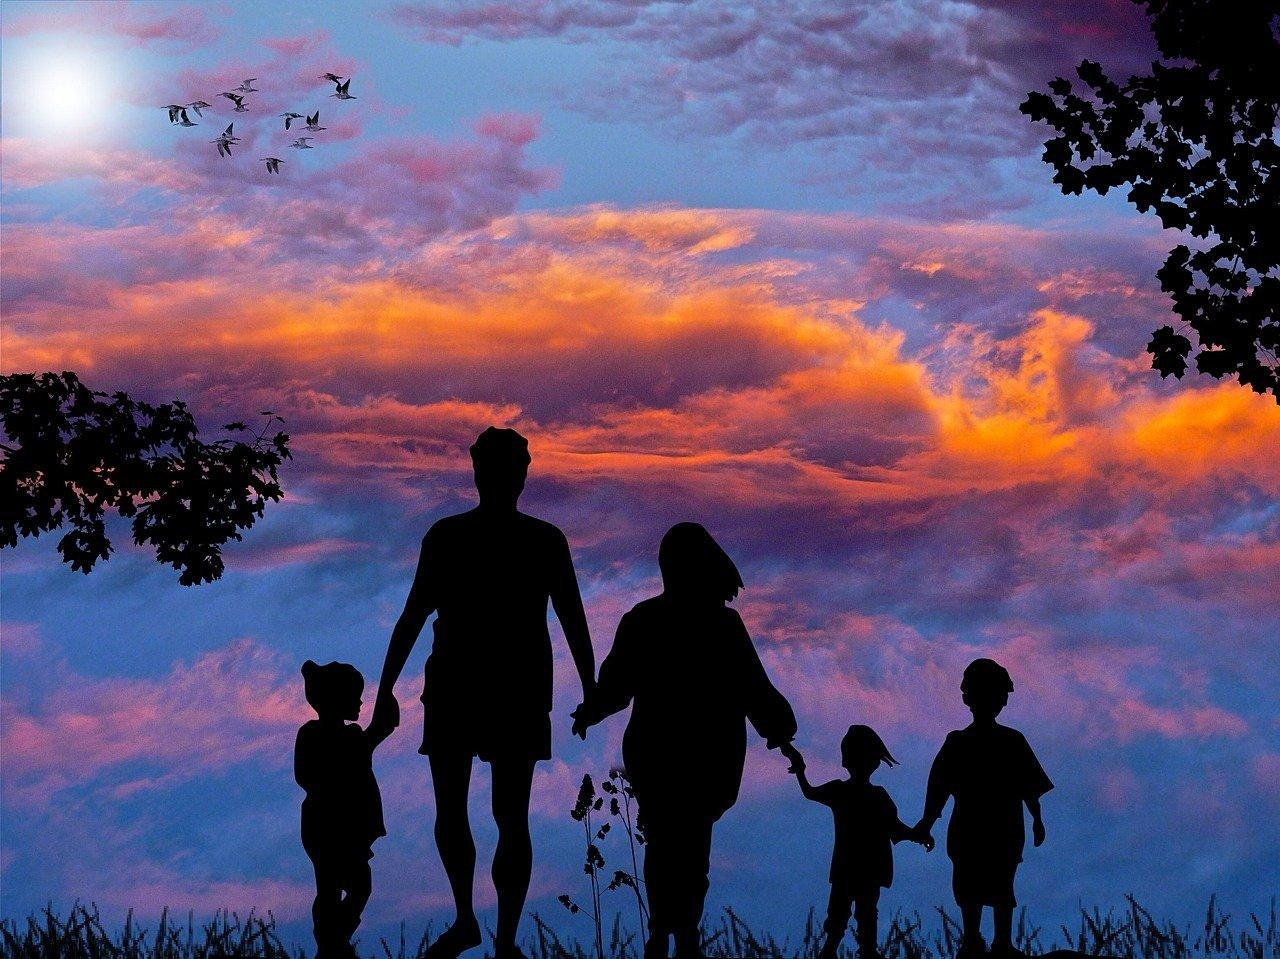 Wednesday, January 20, 2021 - Four Week Positive Discipline for Parents, Part I